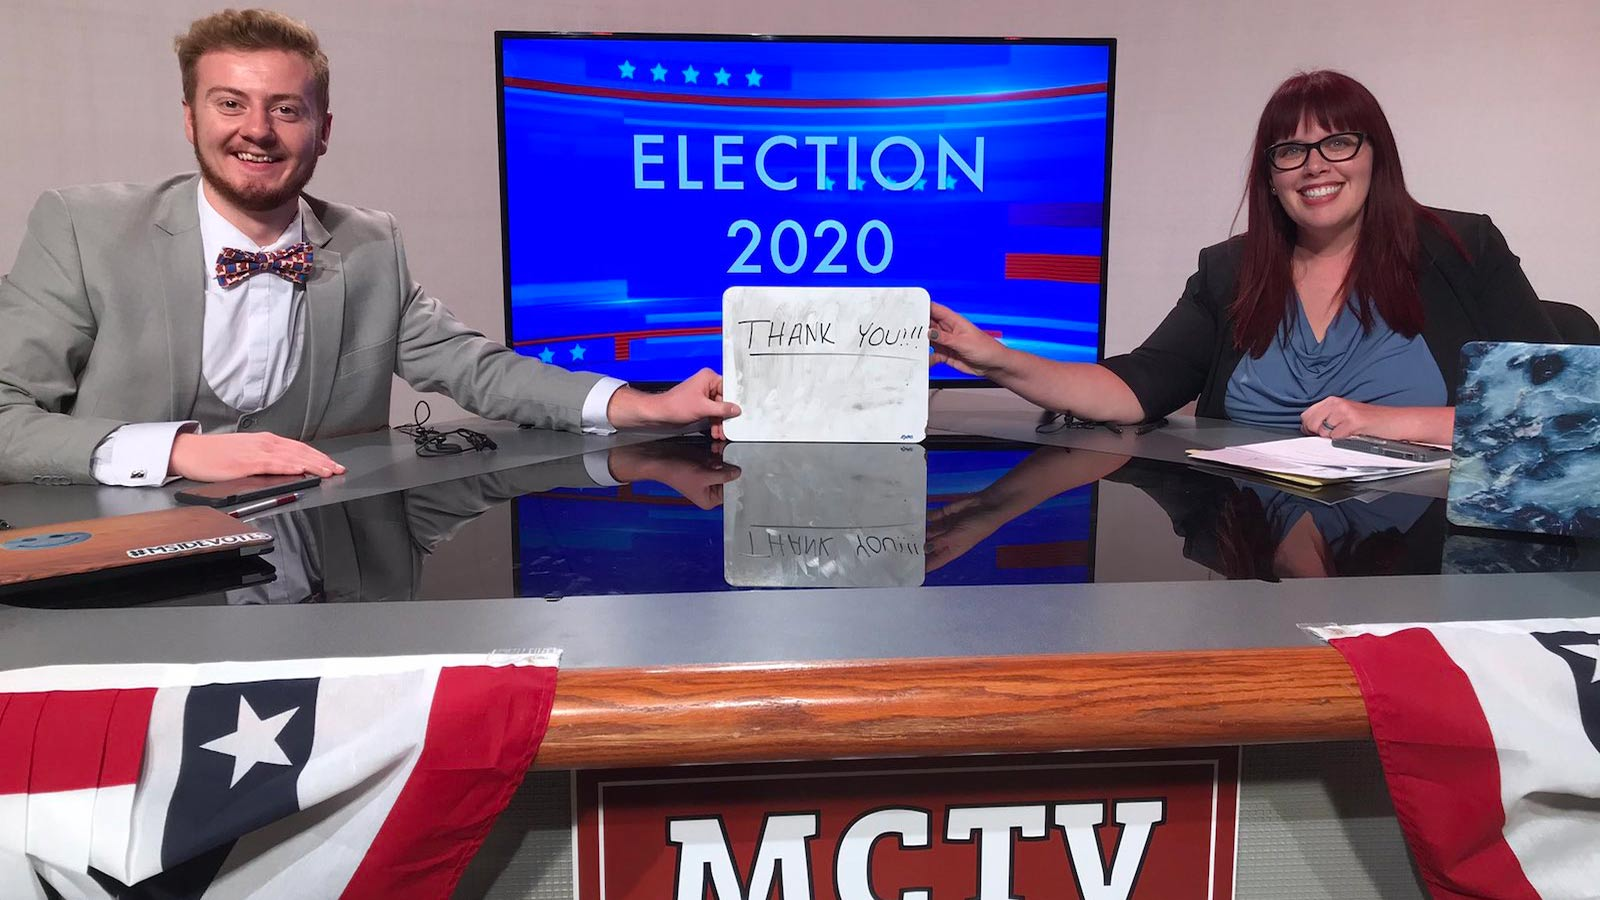 Morningside student Garrett Arbuckle and professor Val Hennings holding a Thank You sign during Election Night 2020